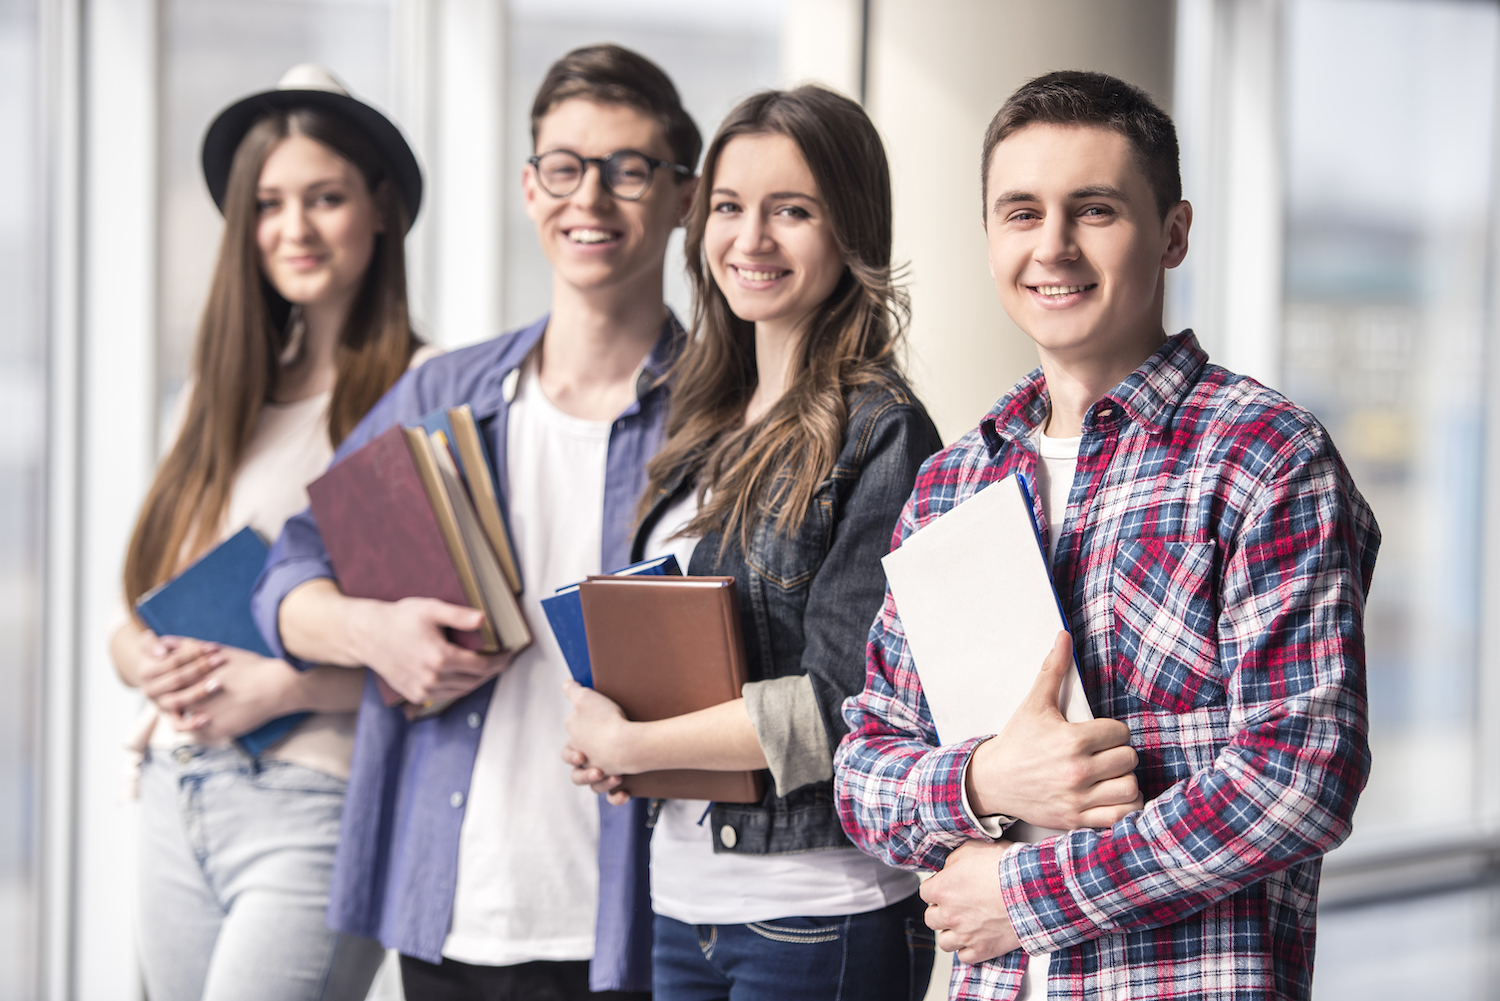 Studying in Russia: What to do for a foreigner?